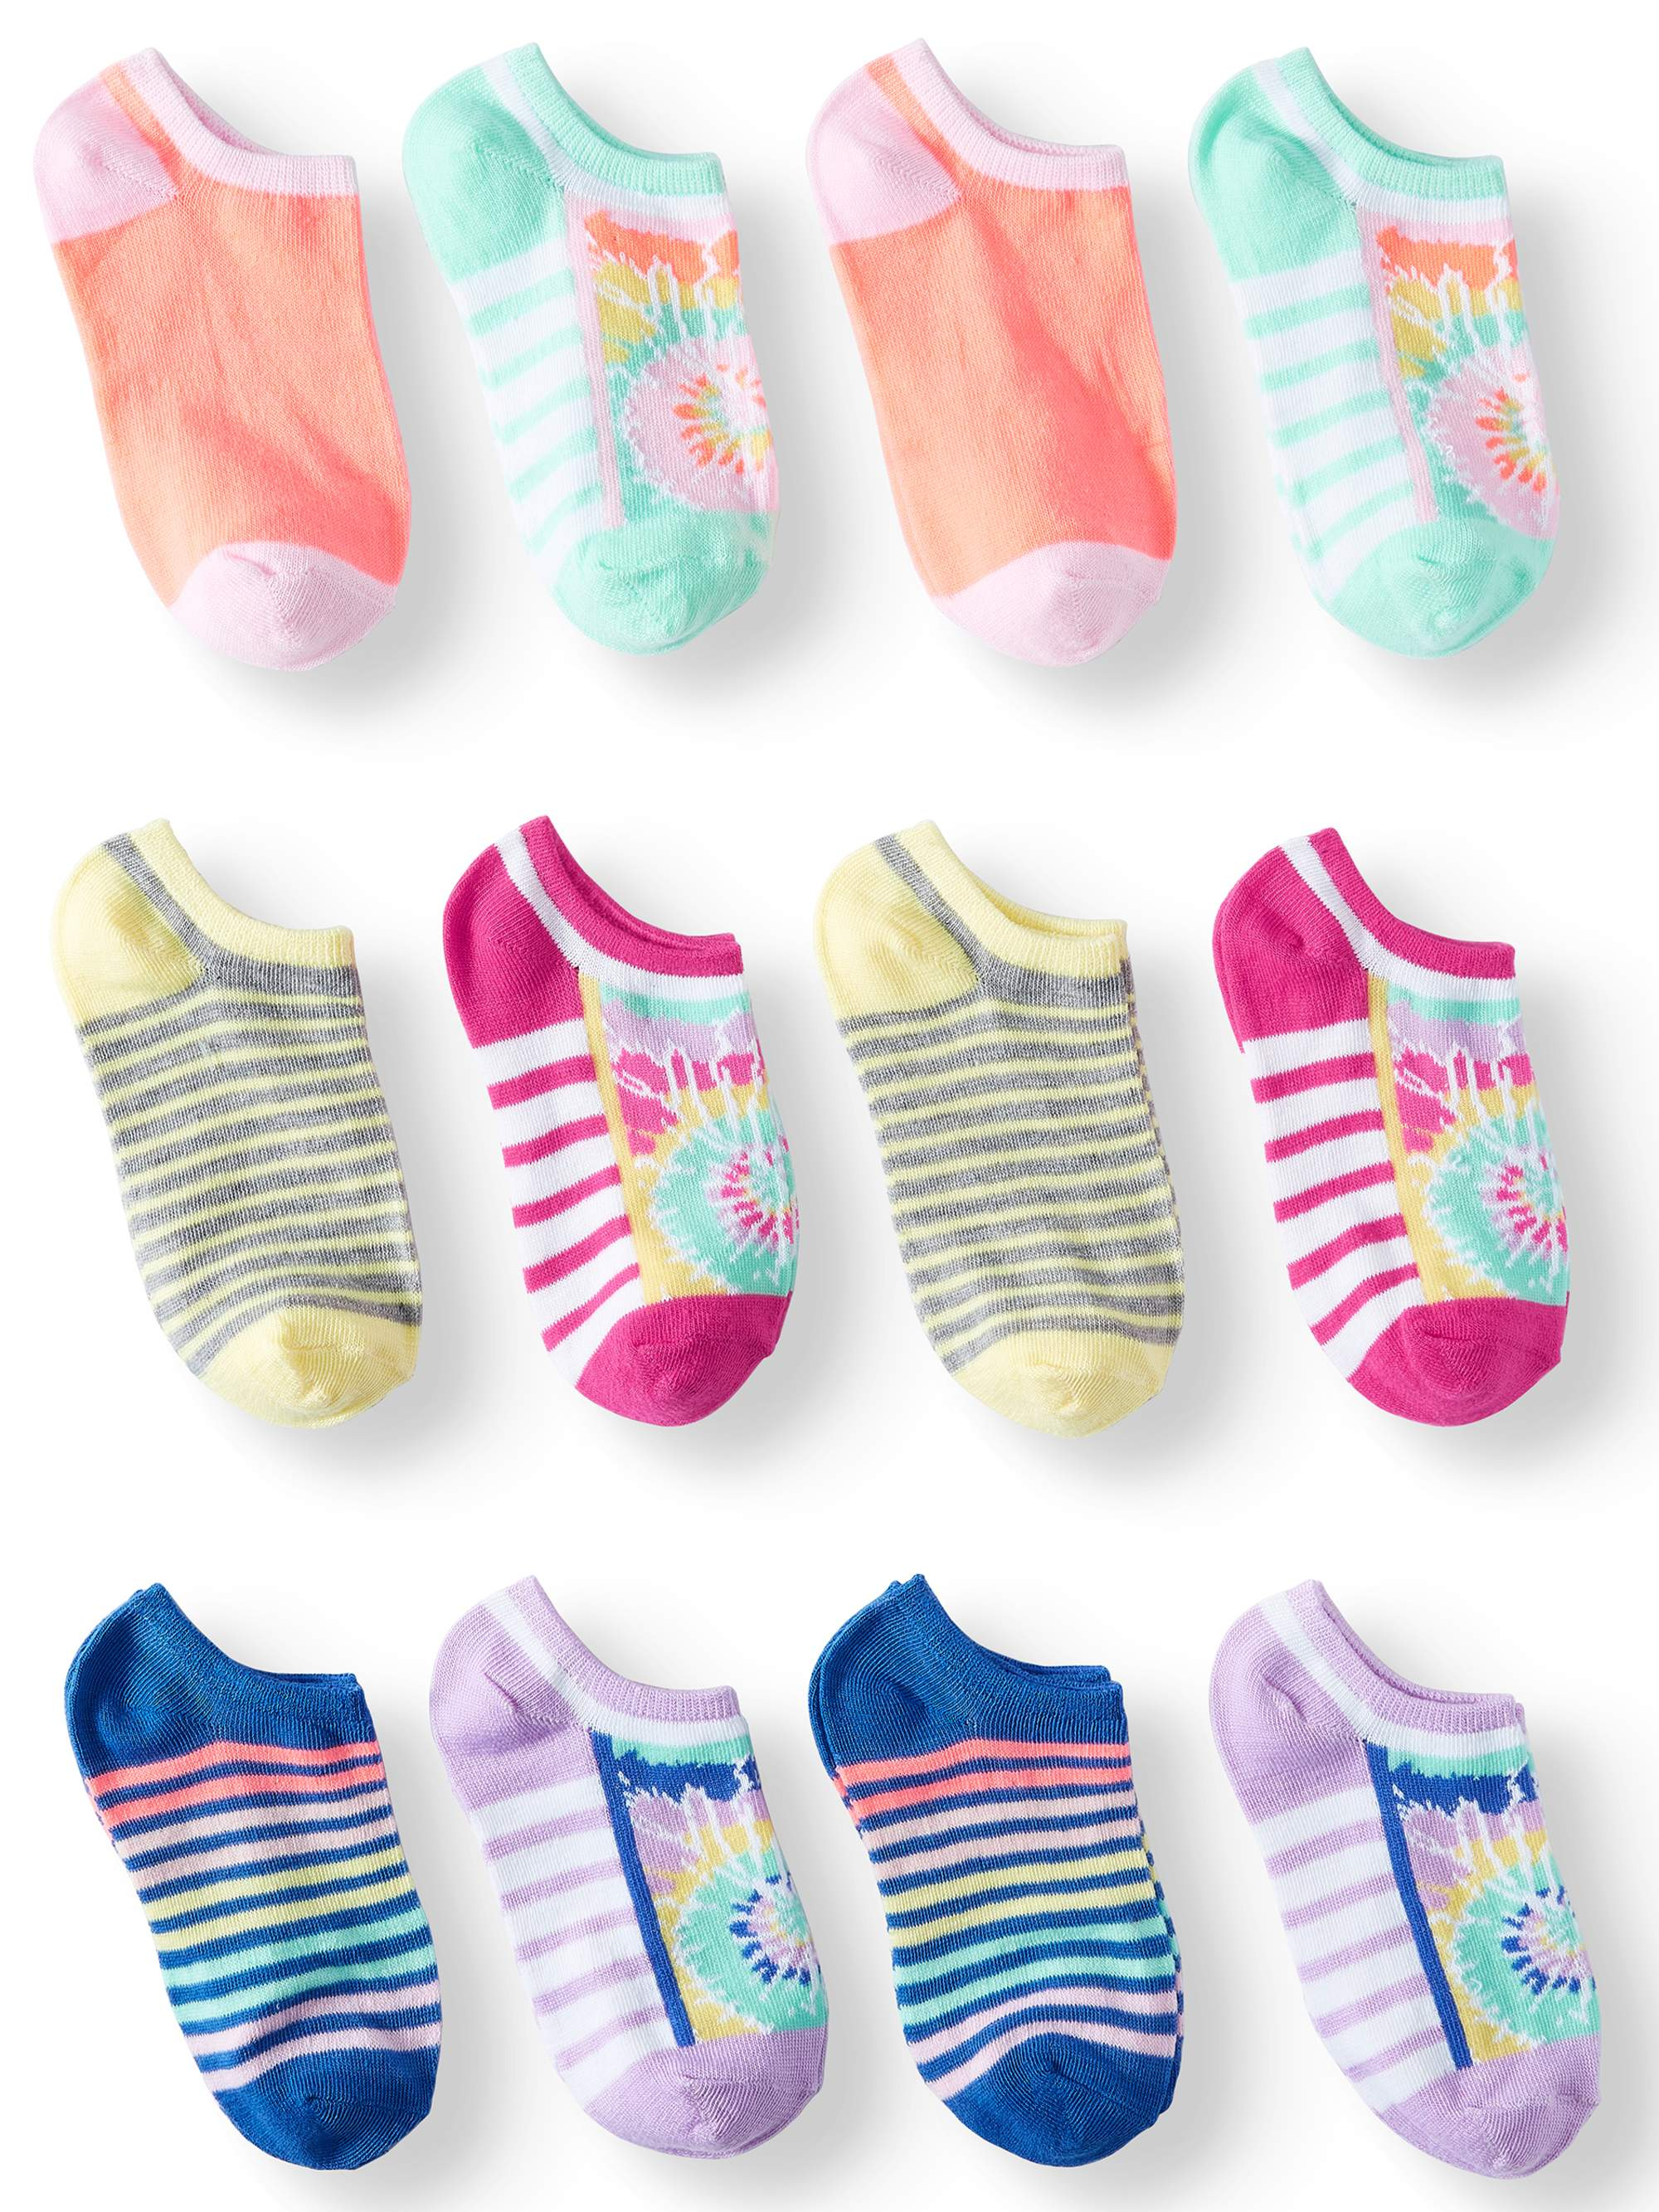 Tie Dye and Stripes 12pk No Show Socks - 2 Pairs of each pattern(Little Girls & Big Girls)